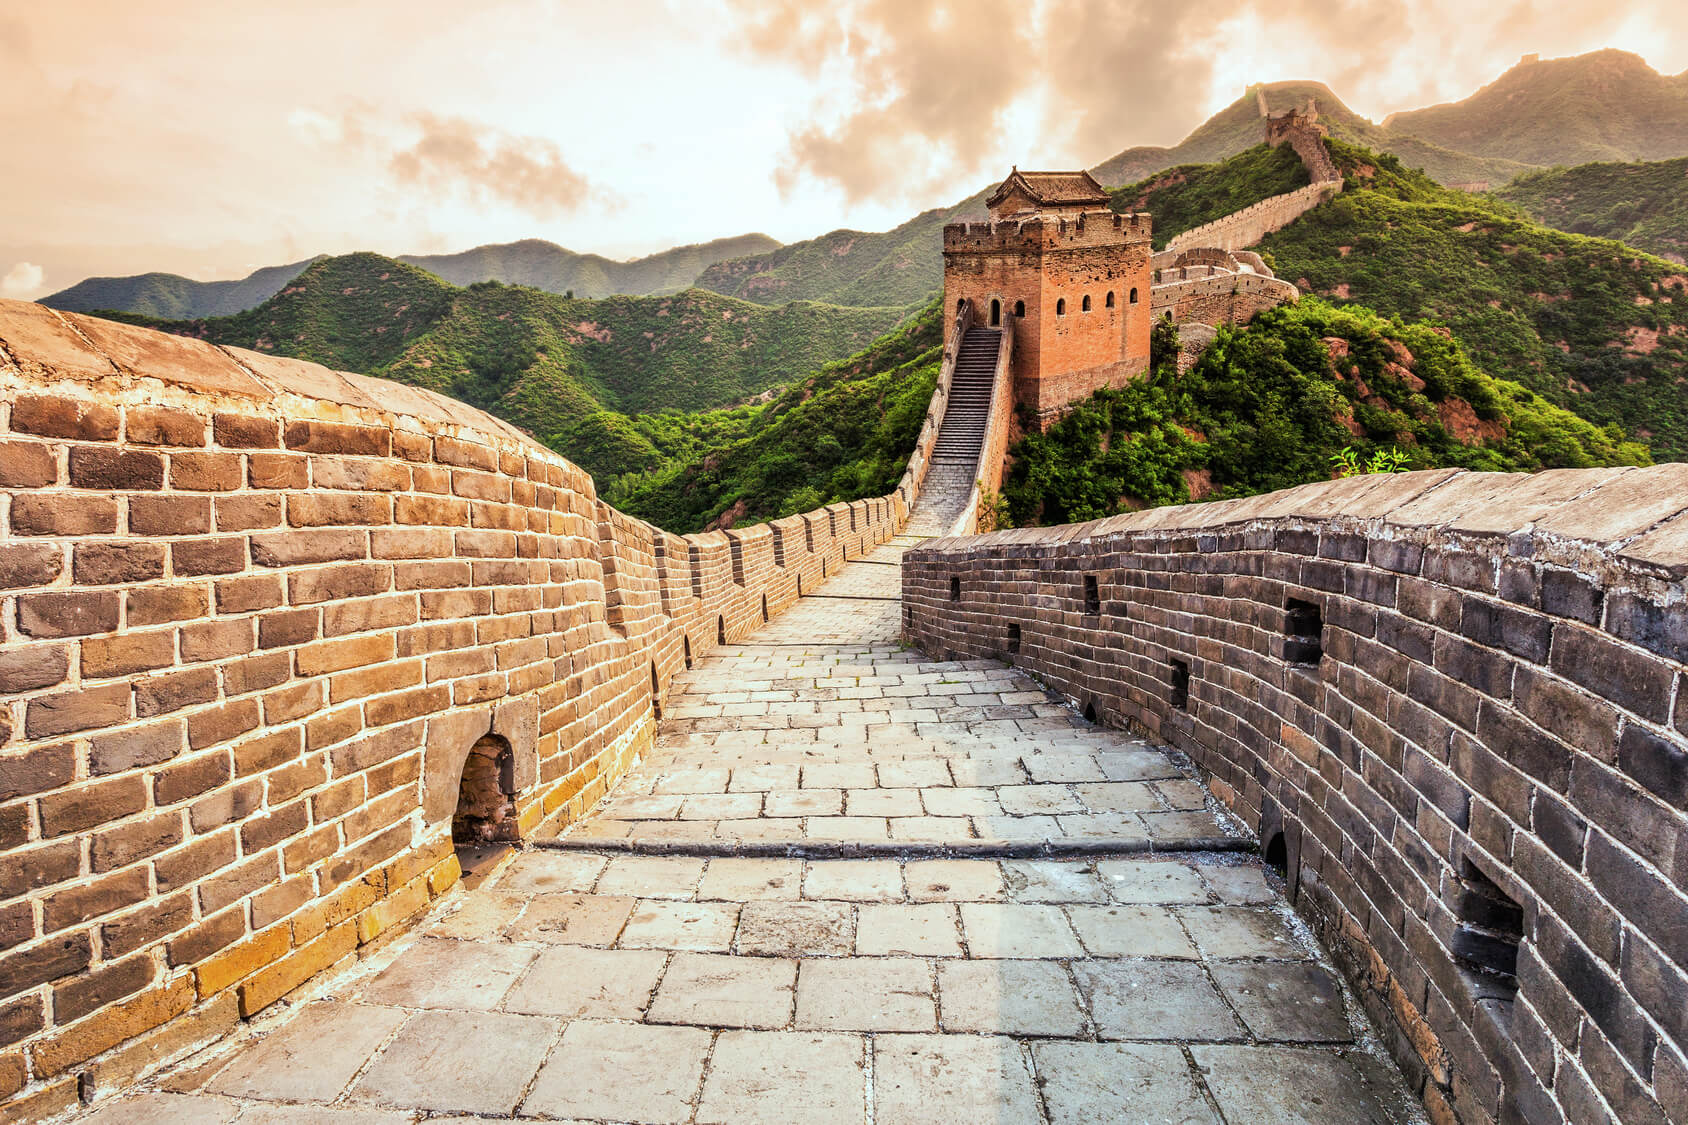 The Great Wall of China | The TEFL Academy - Teaching English in China